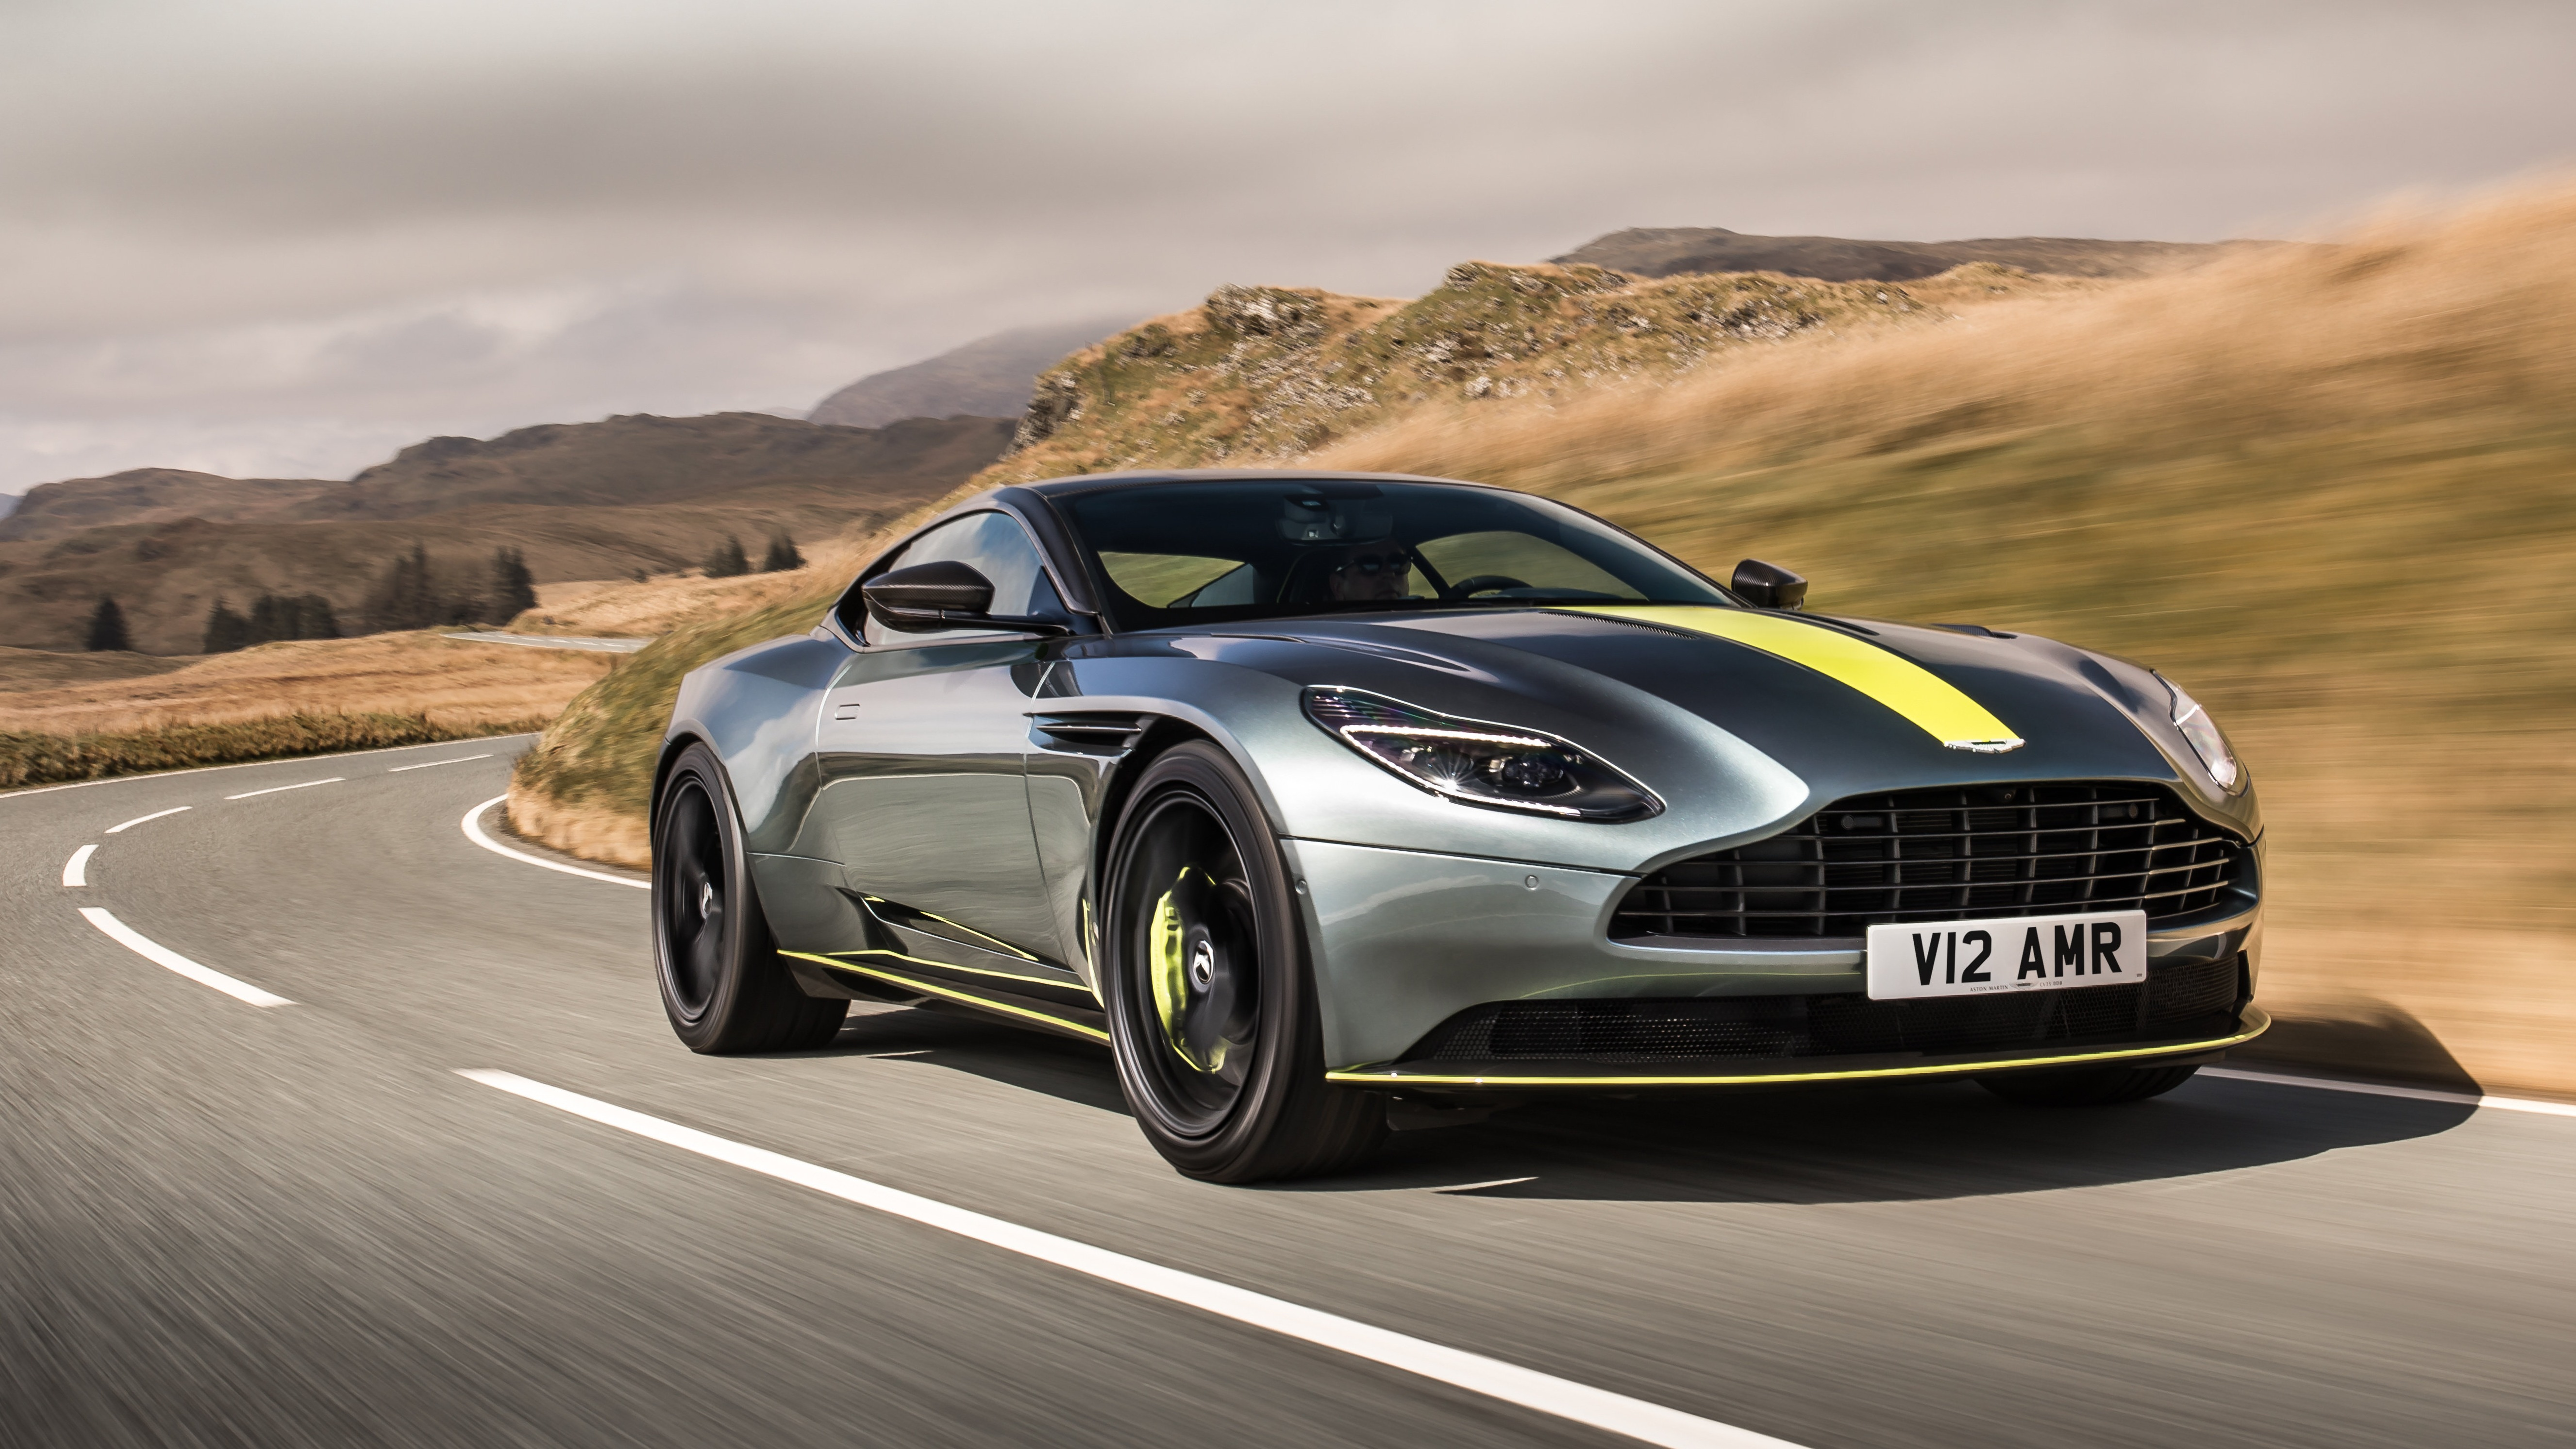 Aston Martin Says Accounting Error Caused It To Understate 2019 Loss Financial Times